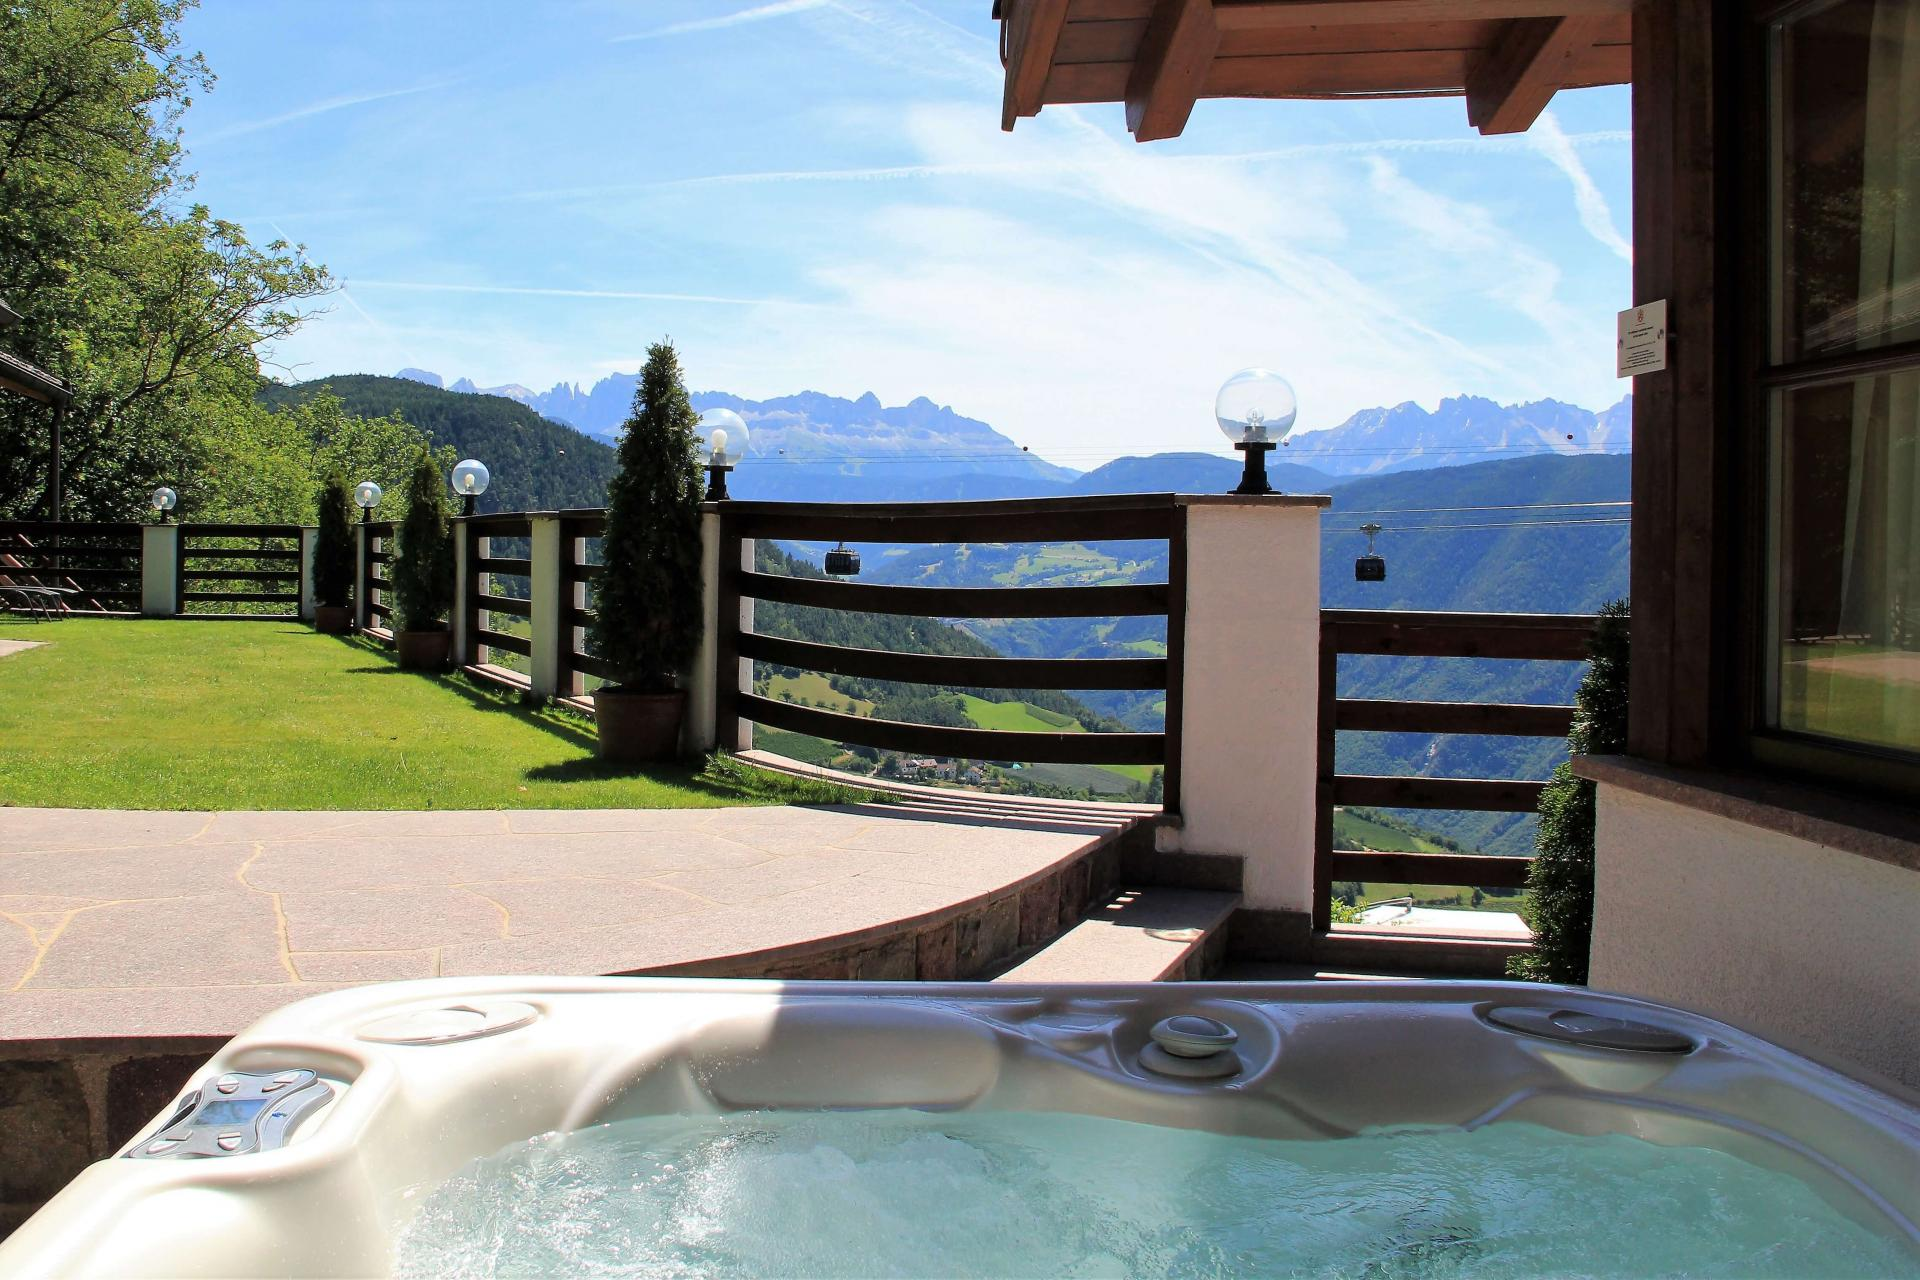 Catered Chalet Dream Holiday Home in the Dolomites Whirlpool Water Panorama View Mountains